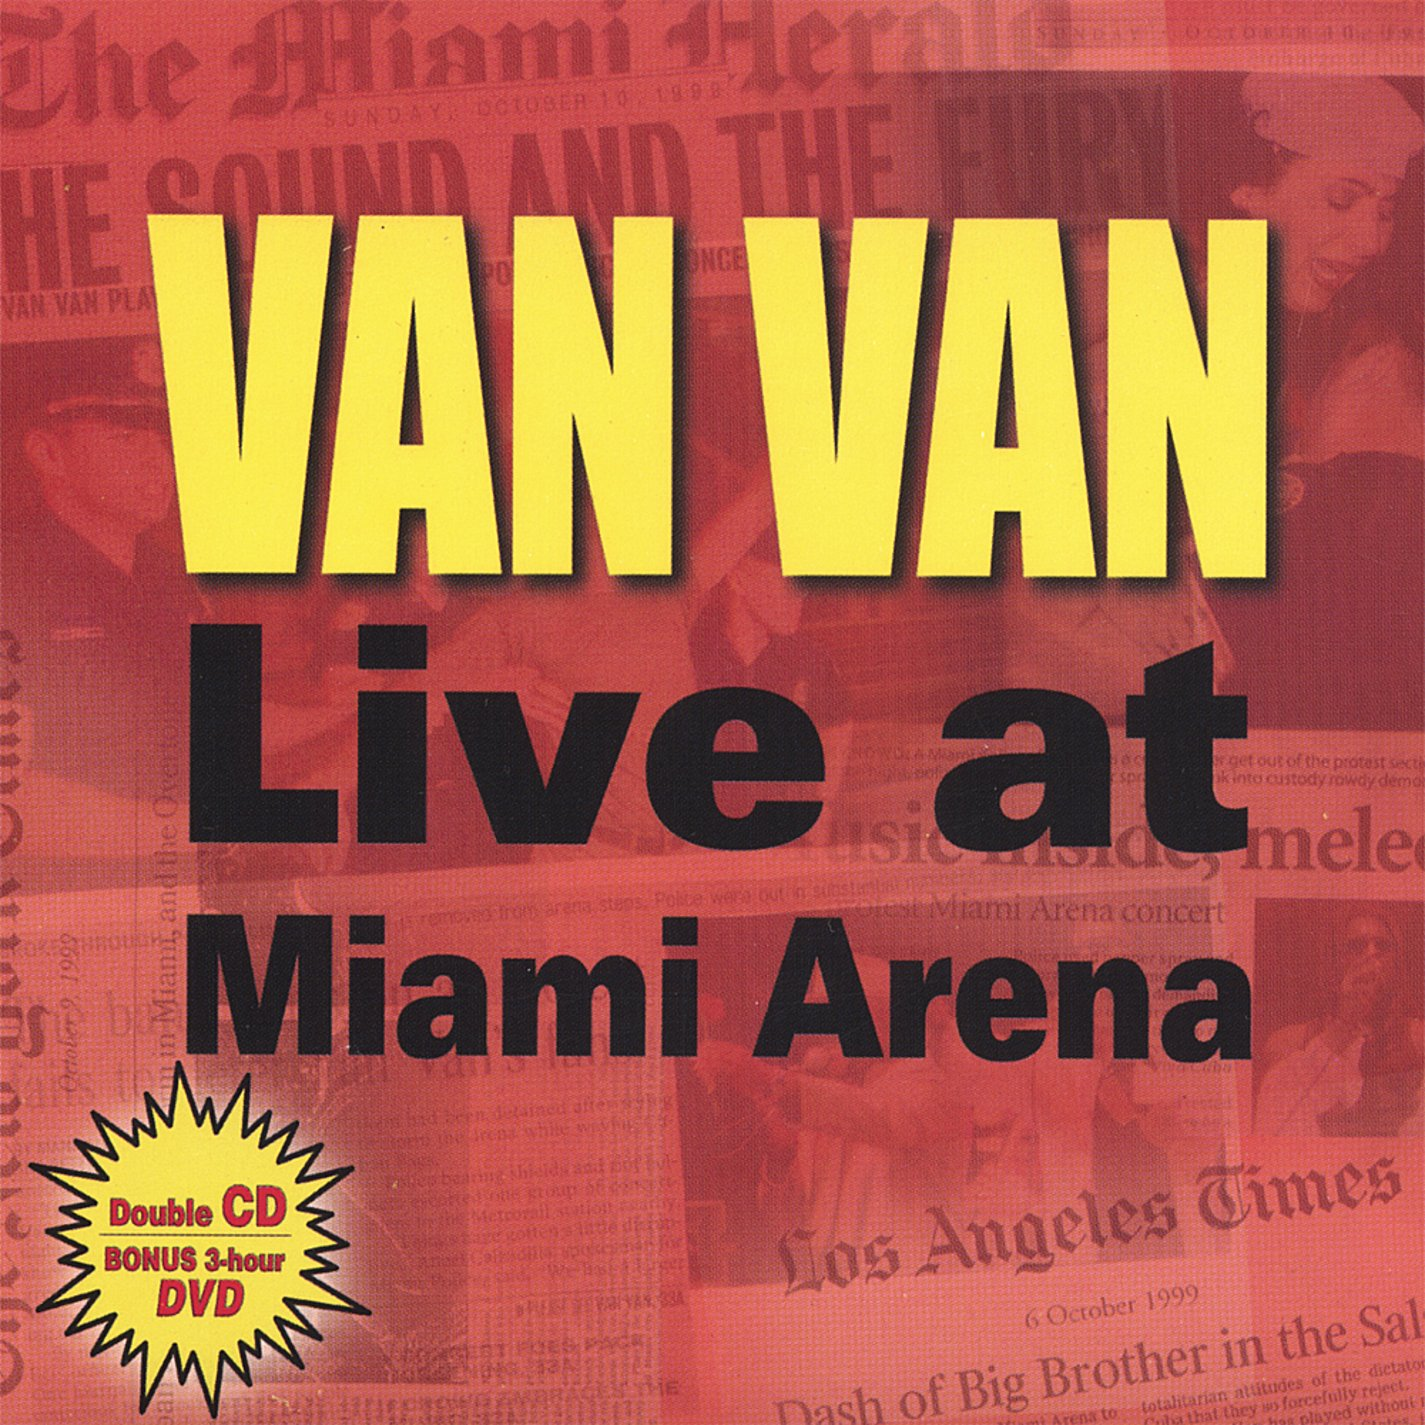 Live at Miami Arena by CD Baby